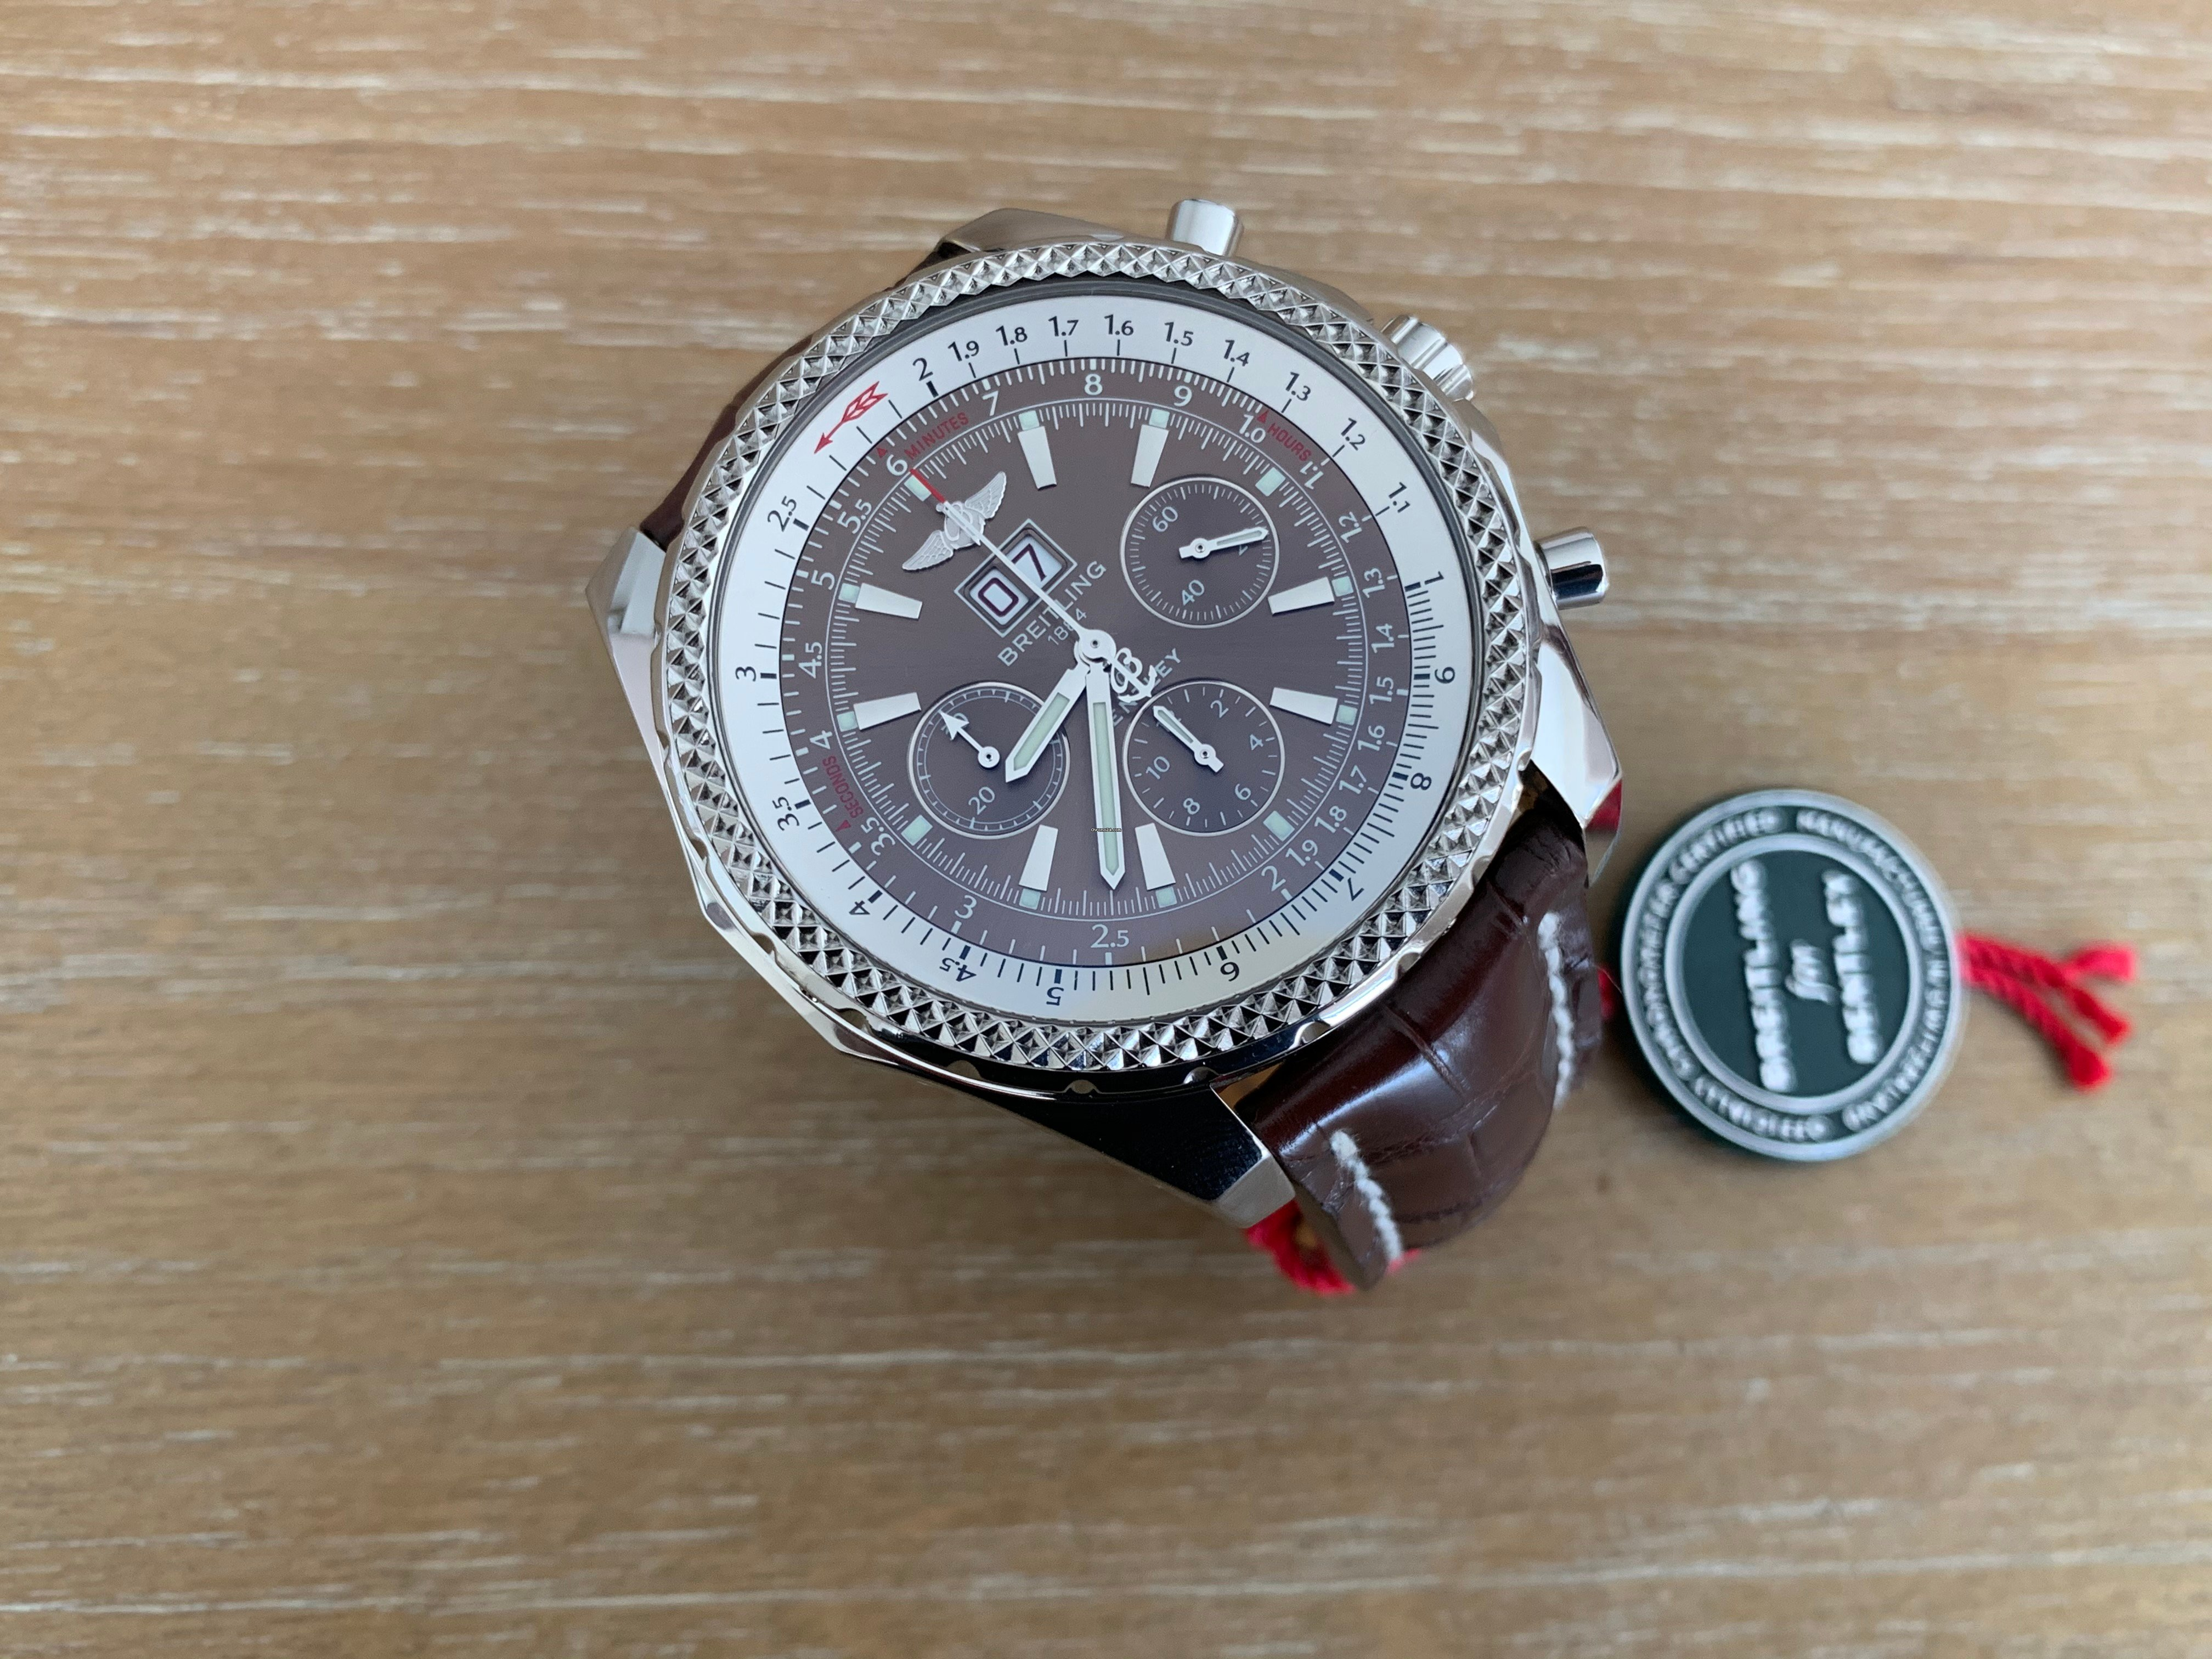 Breitling Bentley 6 75 For Au 7 516 For Sale From A Trusted Seller On Chrono24